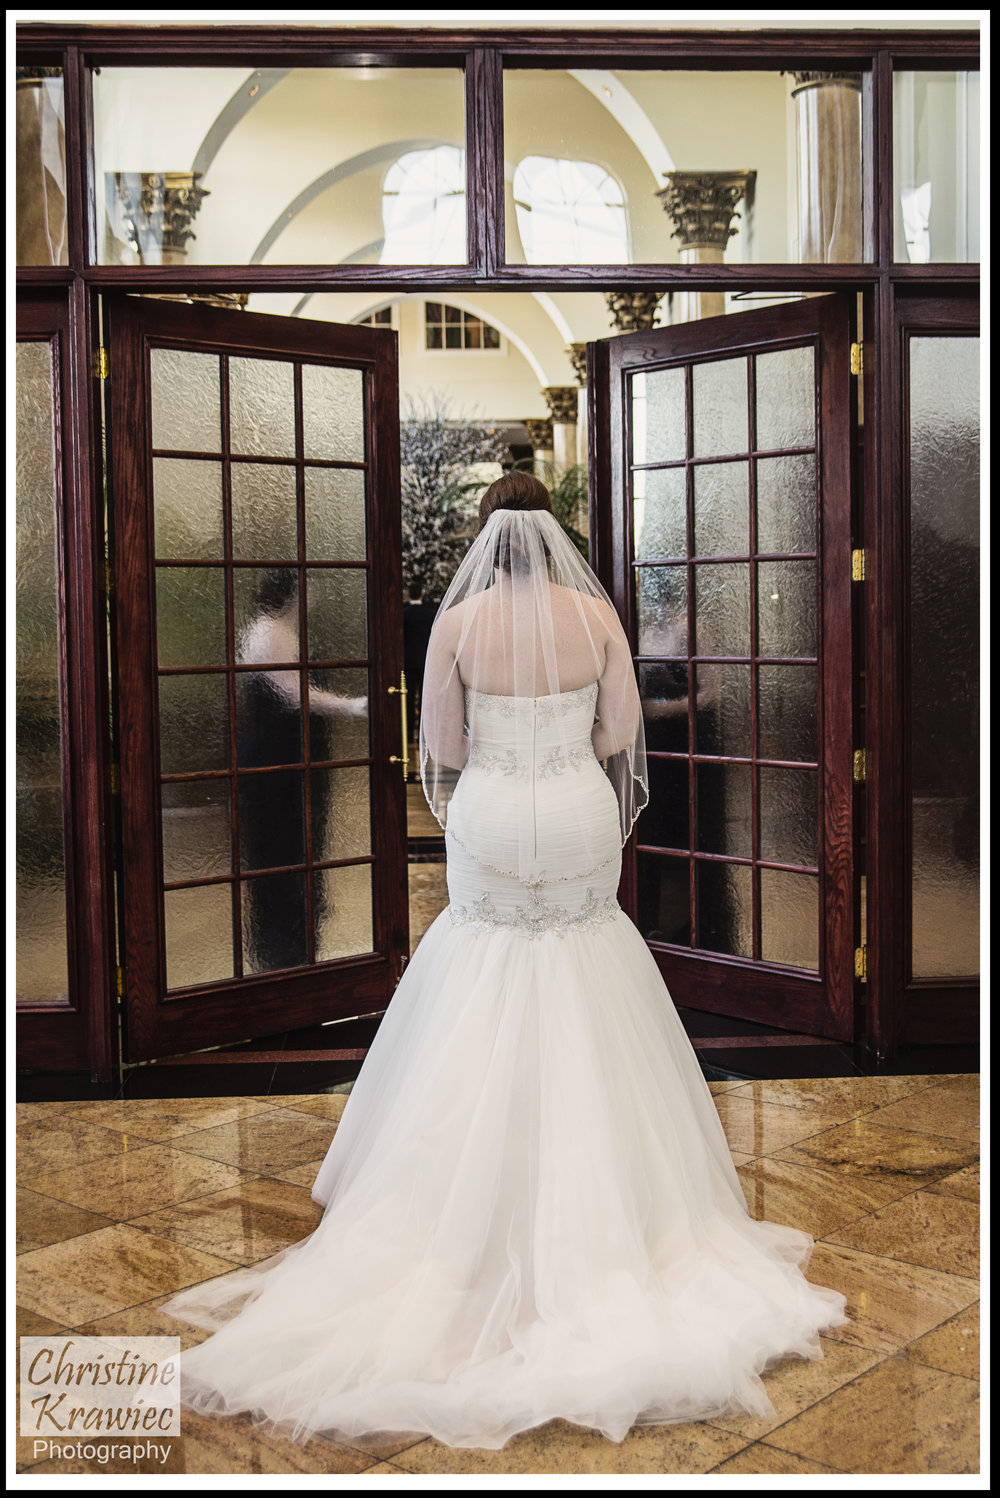 I was ecstatic on how dramatic we were able to make the First look with the double doors opening!